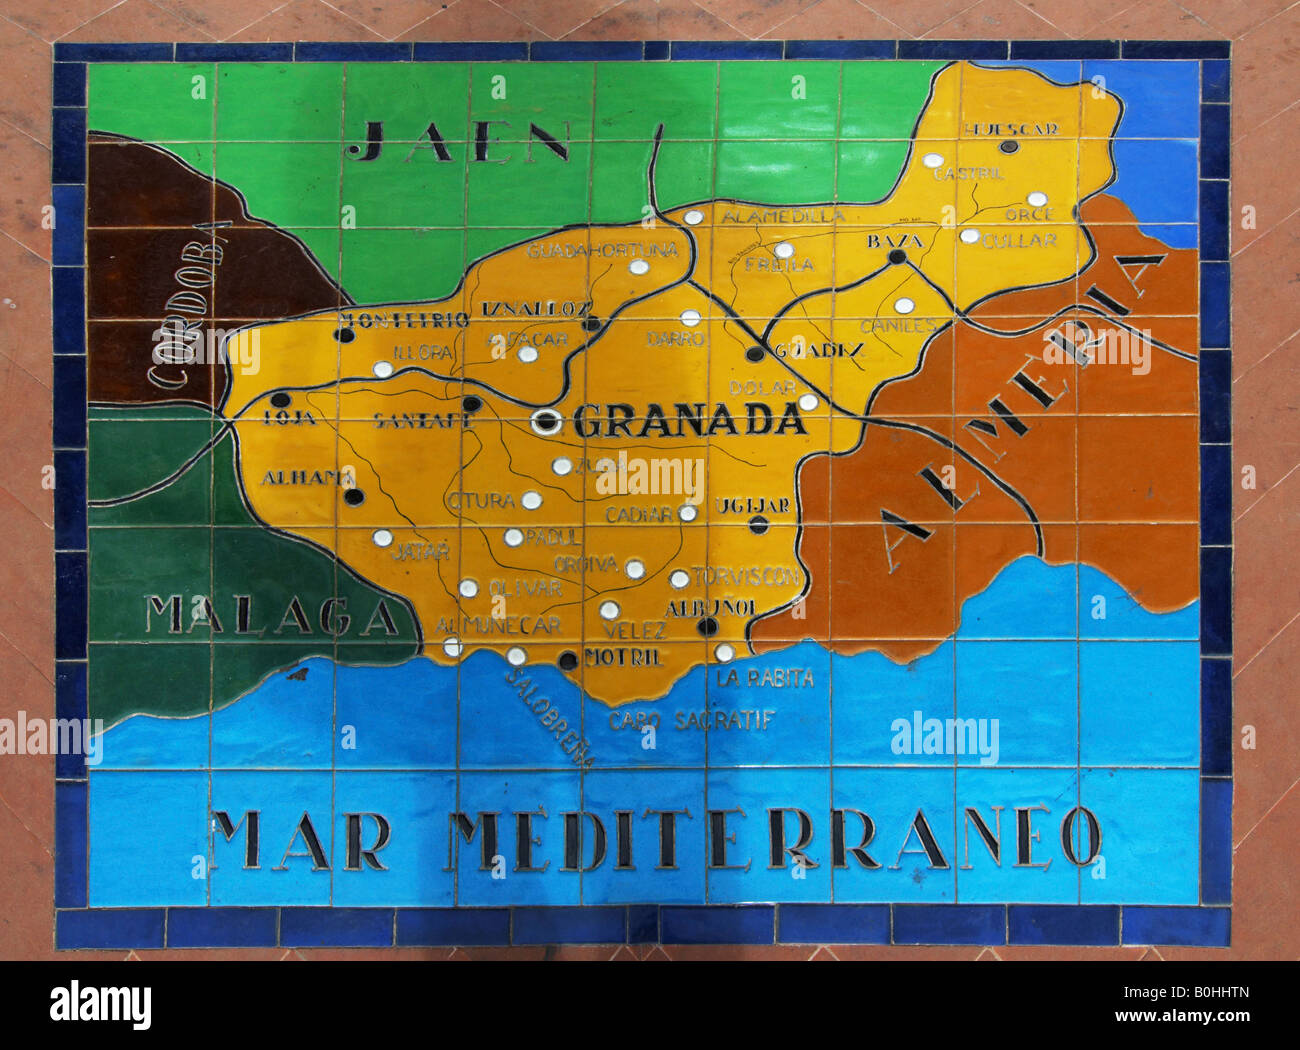 Map Of Spain Showing Seville.Map Showing Parts Of Spain On Ceramic Tiles At The Palacio De Espana